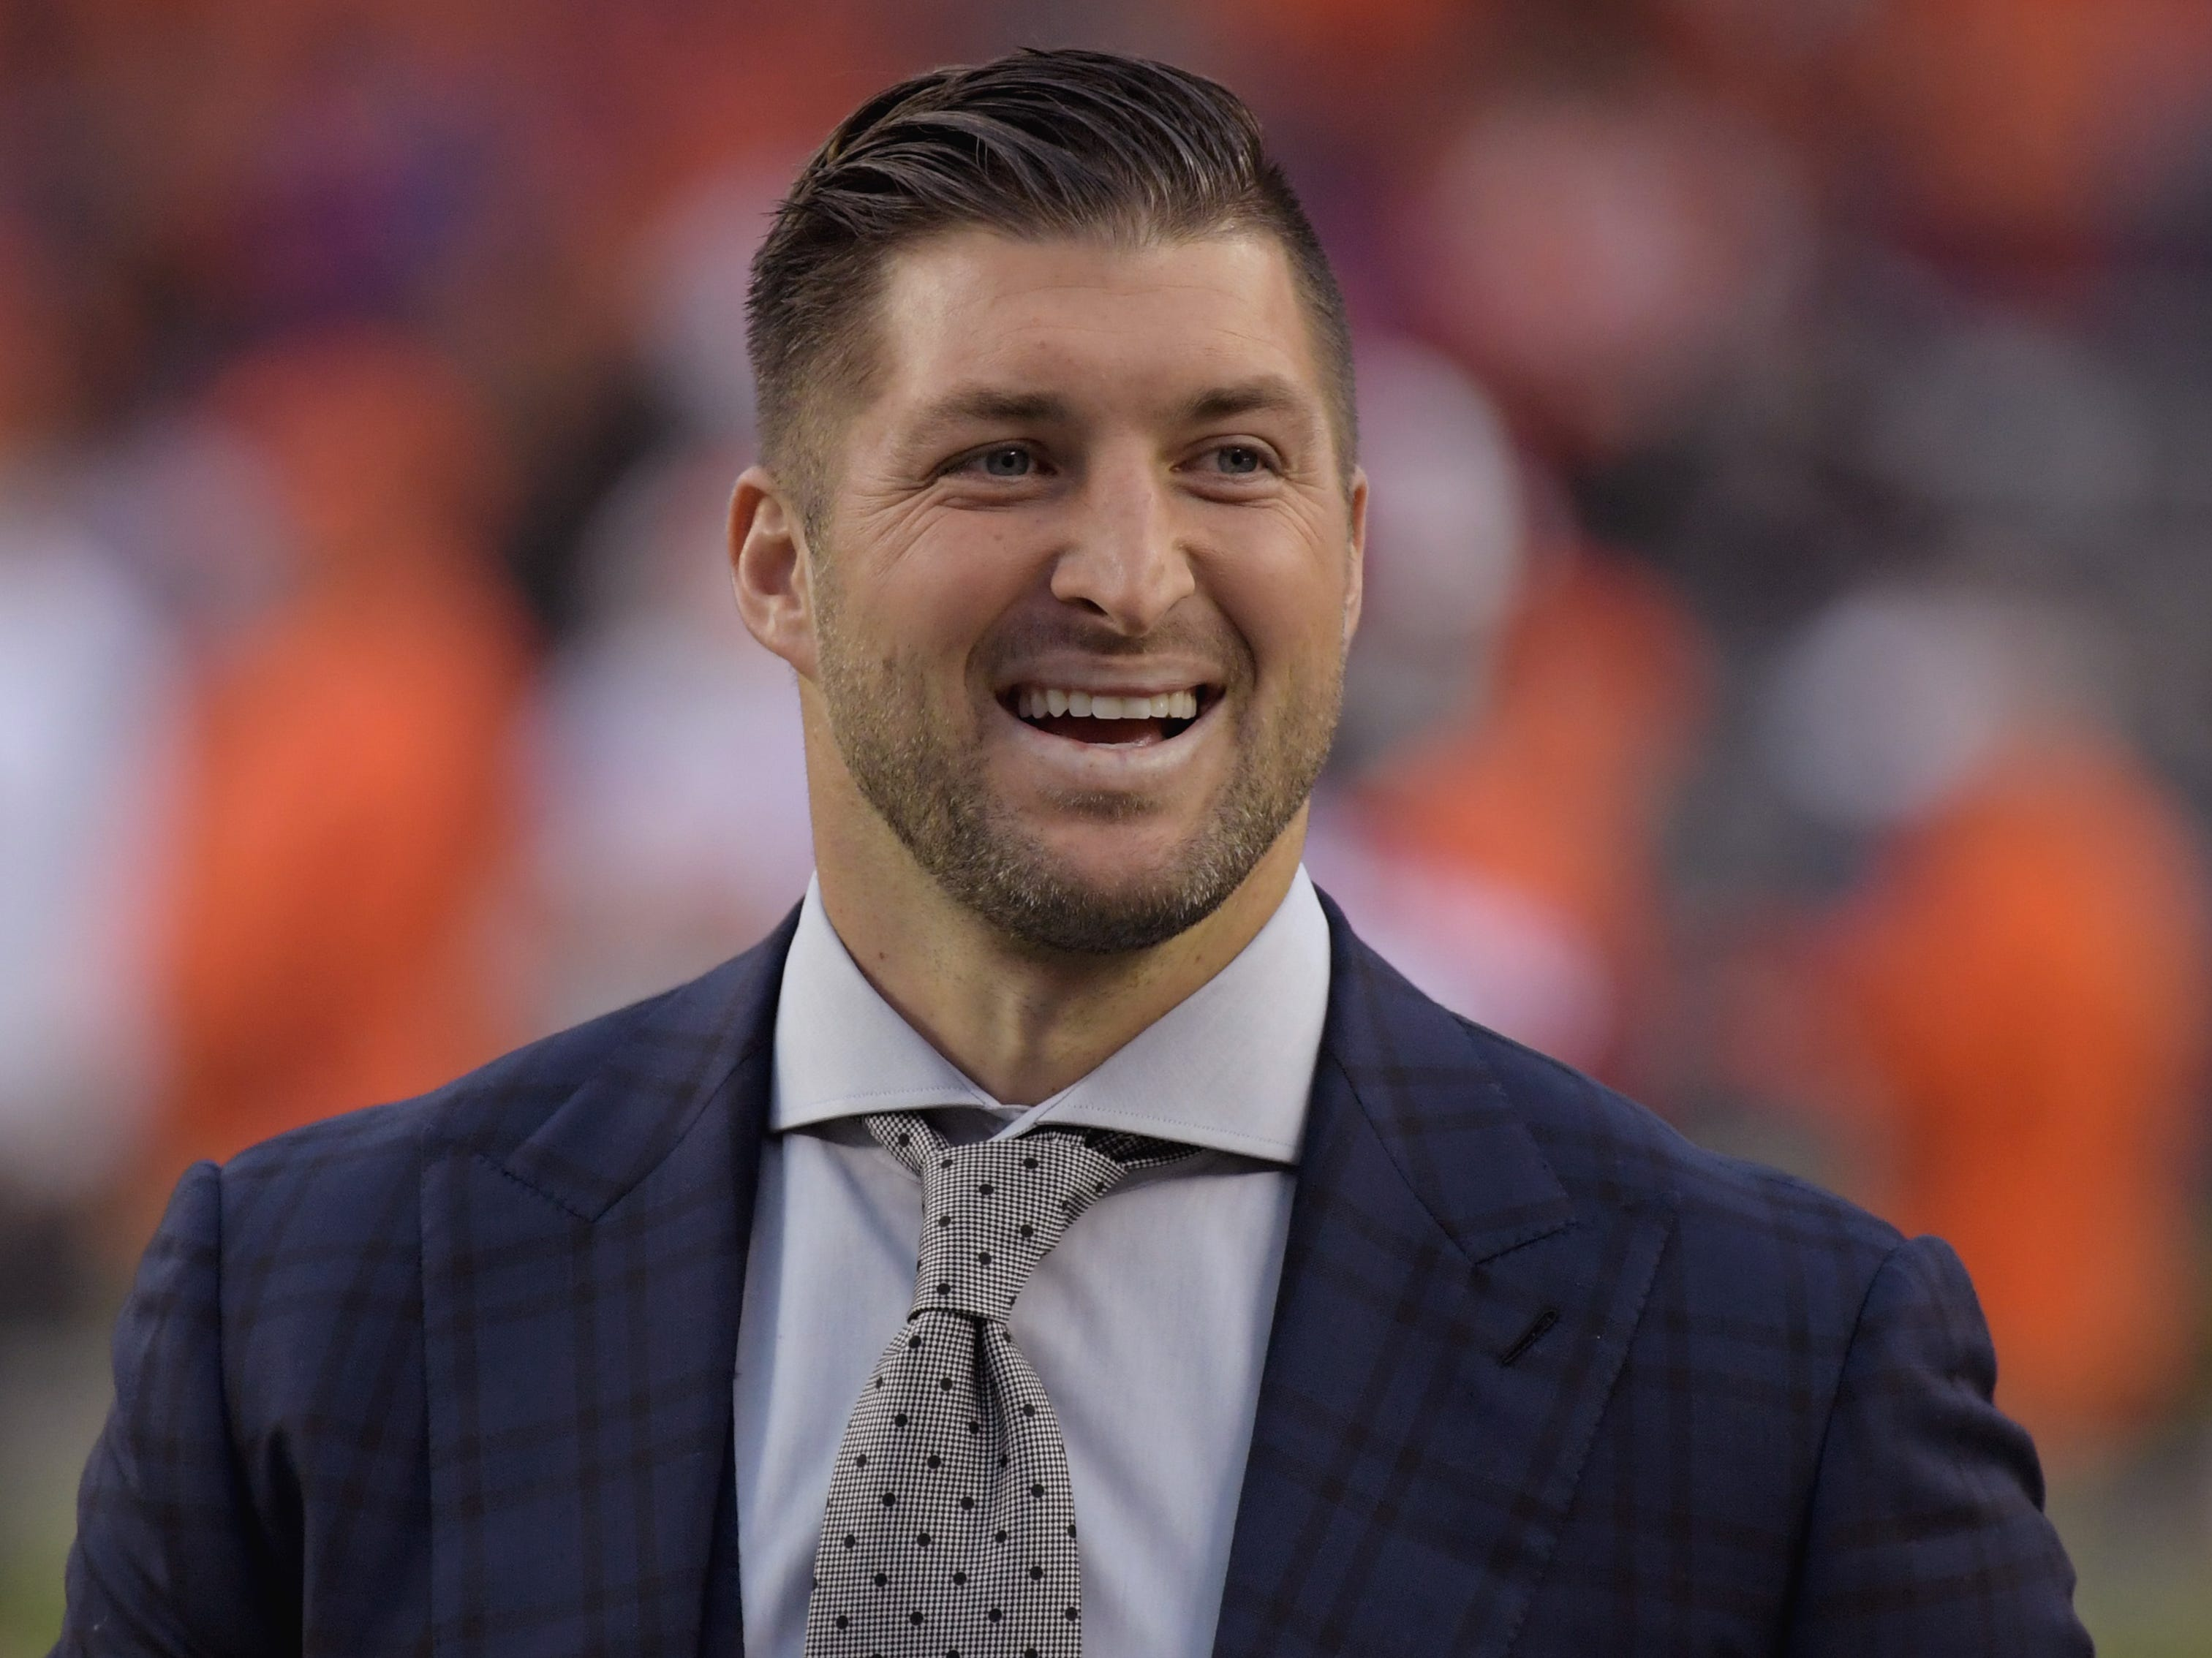 Tim Tebow is engaged to a former Miss Universe.